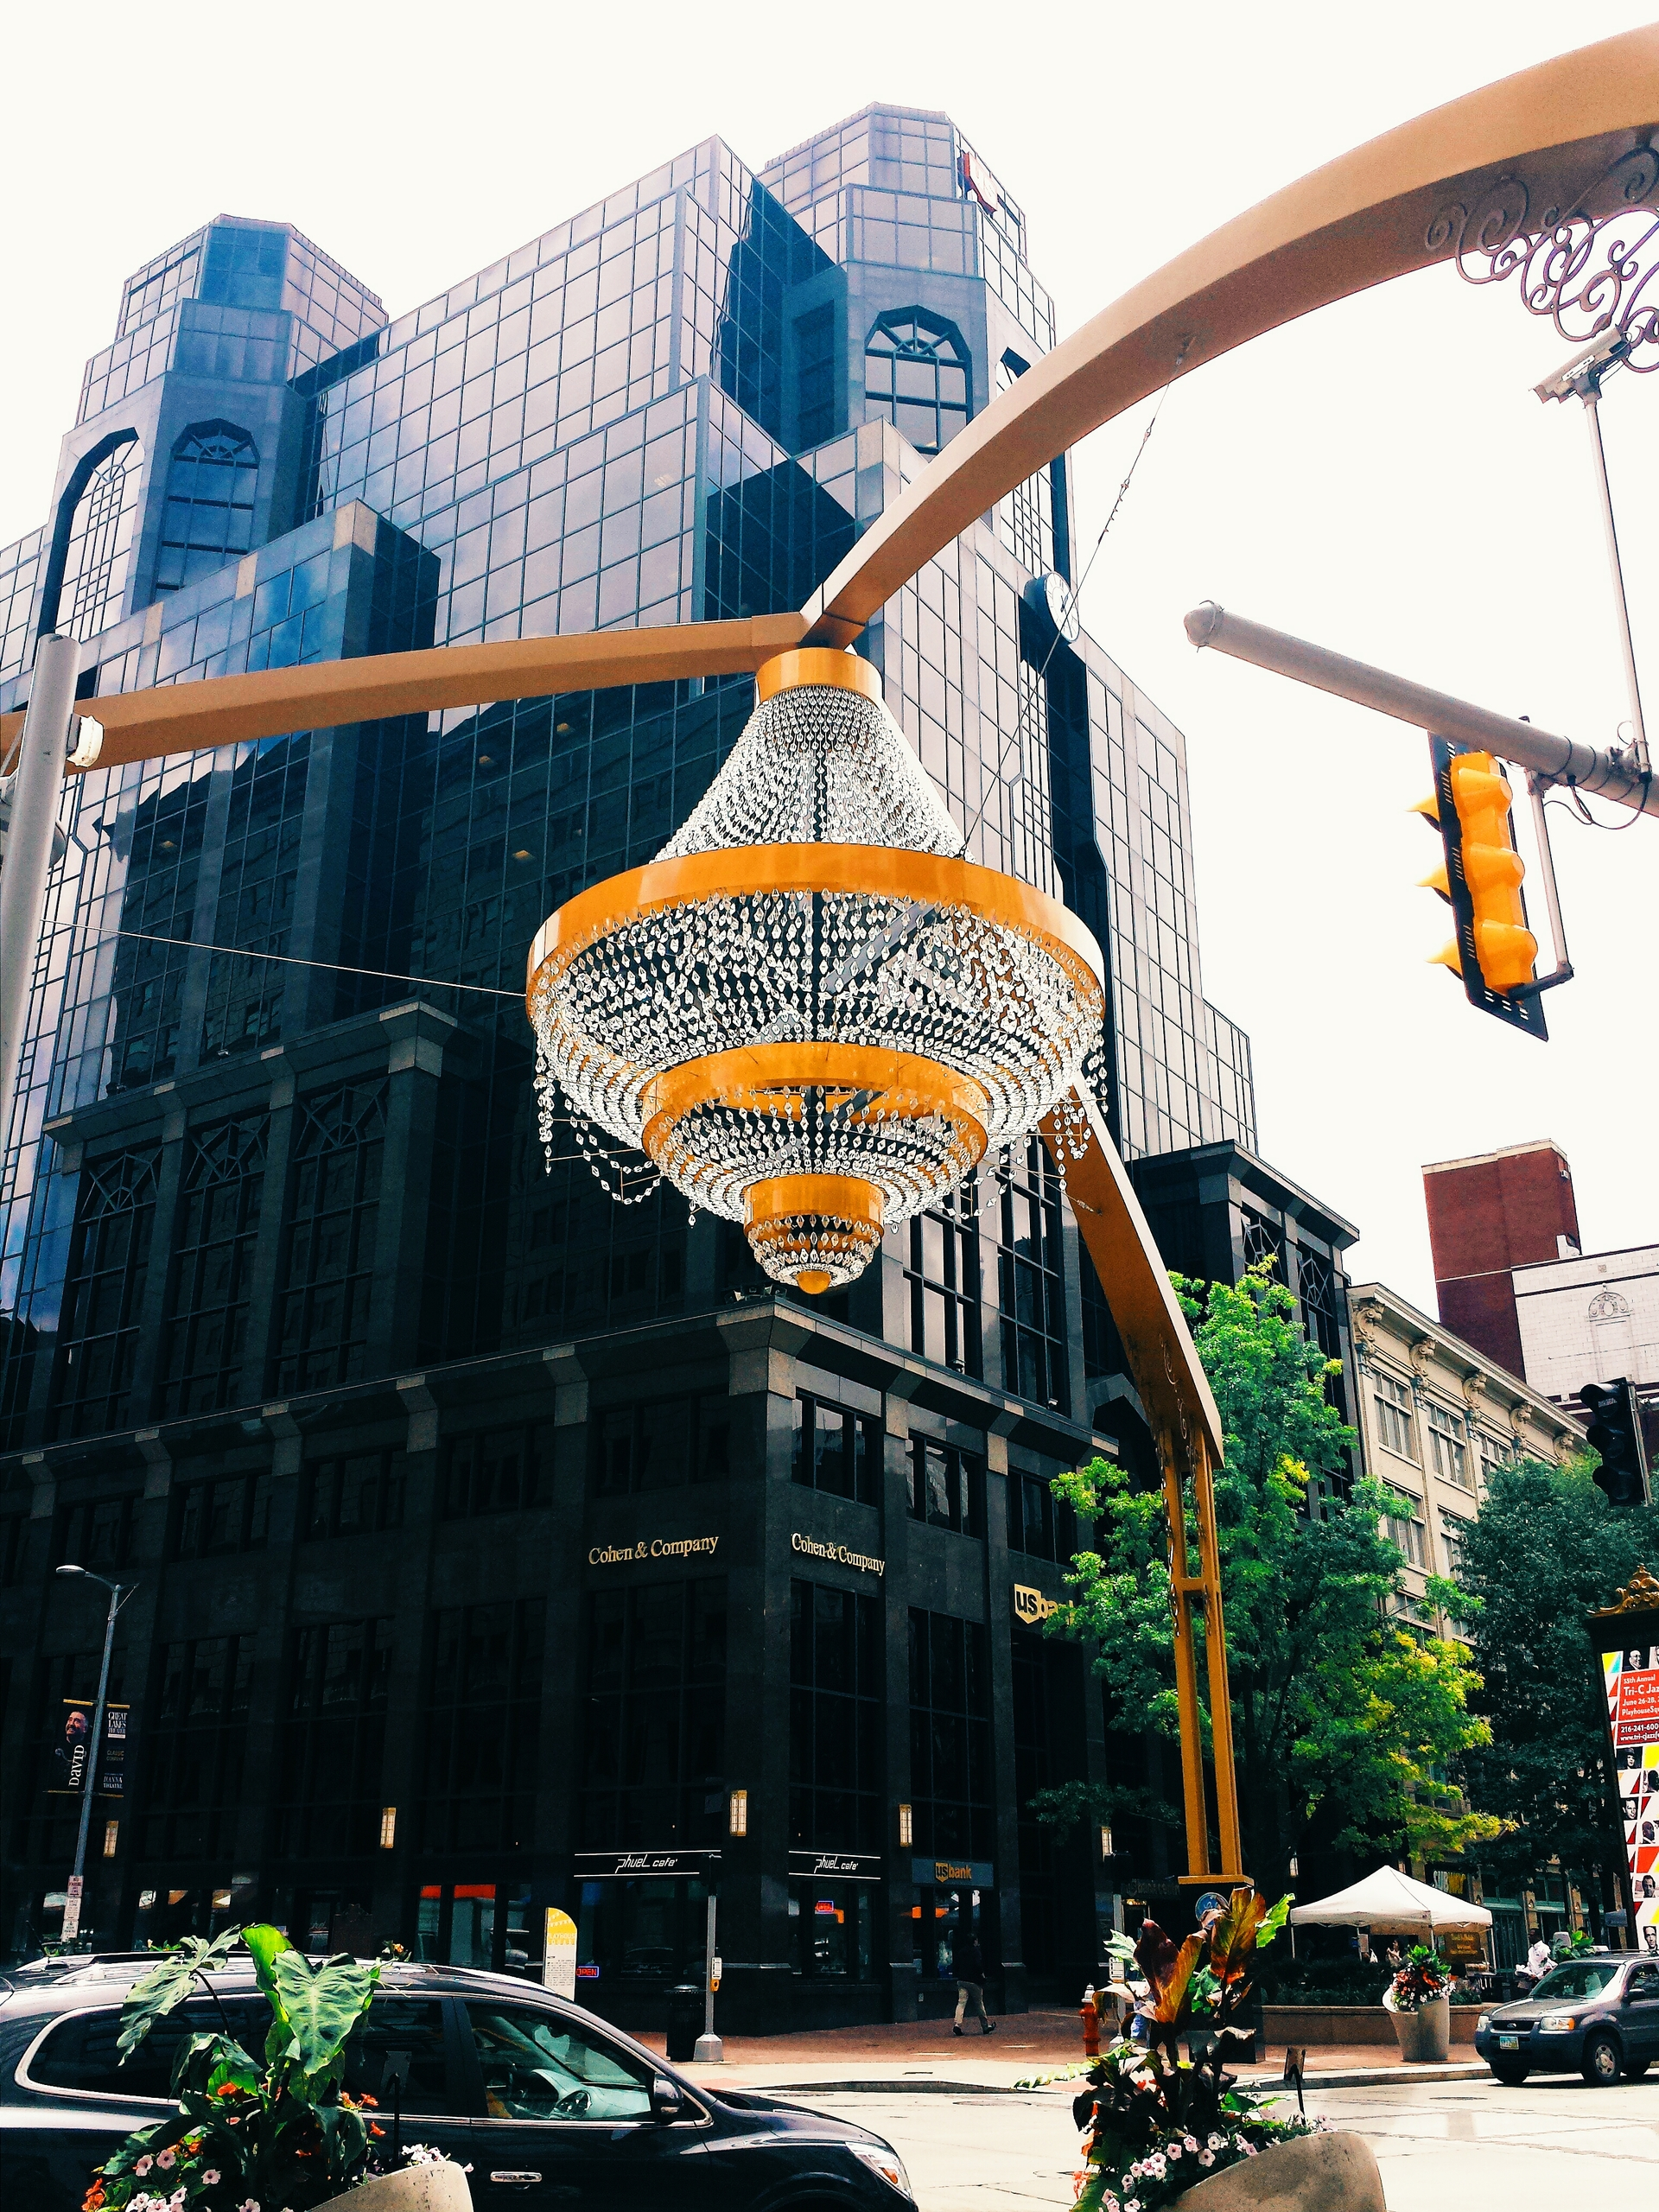 Foap Chandelier at an intersection Chandelier in the